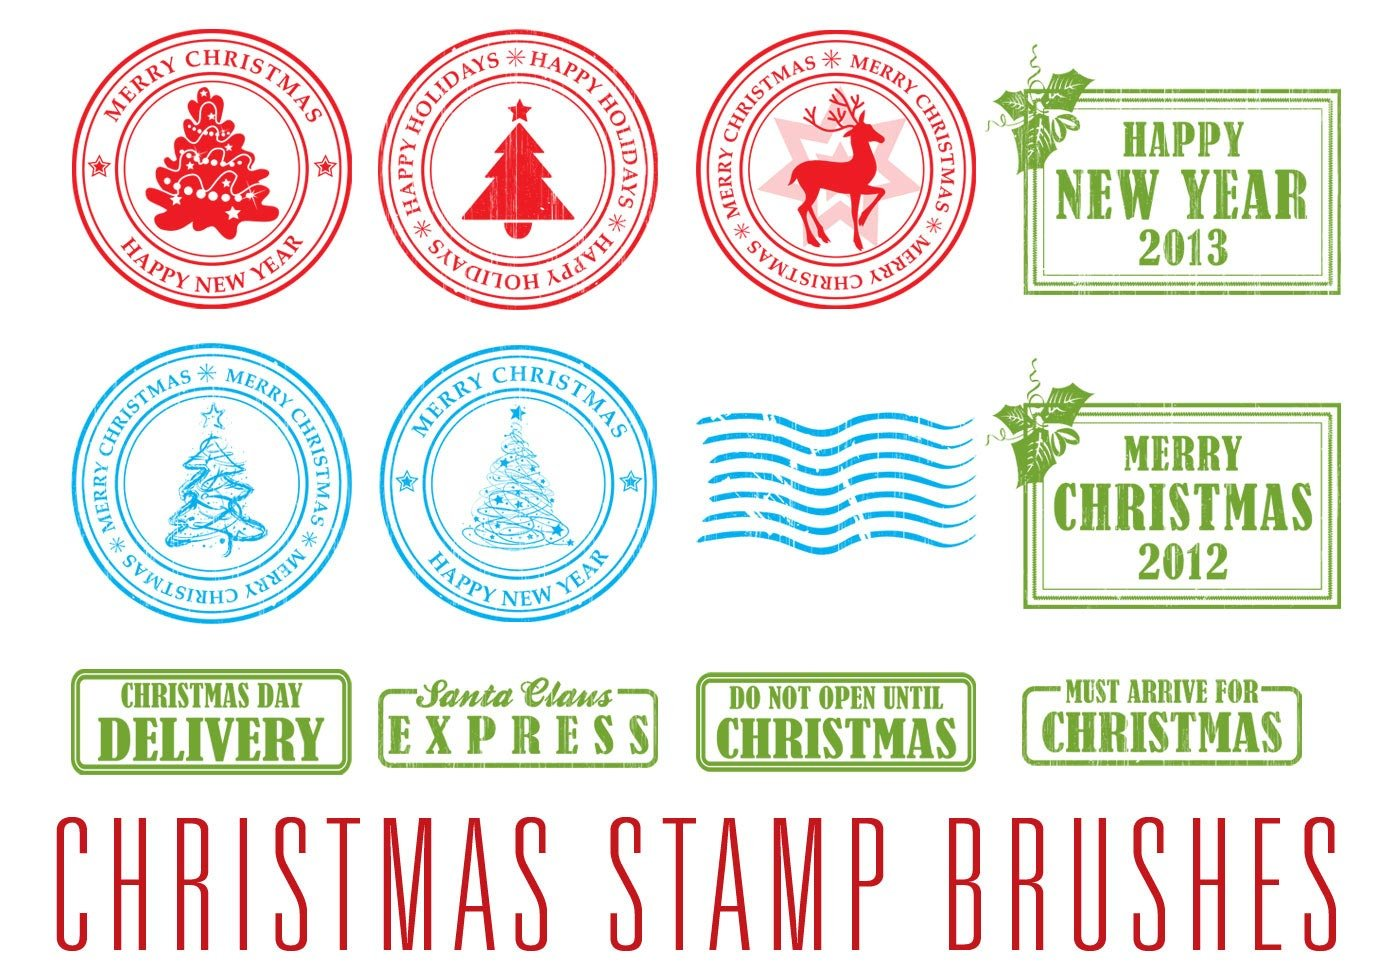 Christmas Stamp Brushes Free Photoshop Brushes At Brusheezy